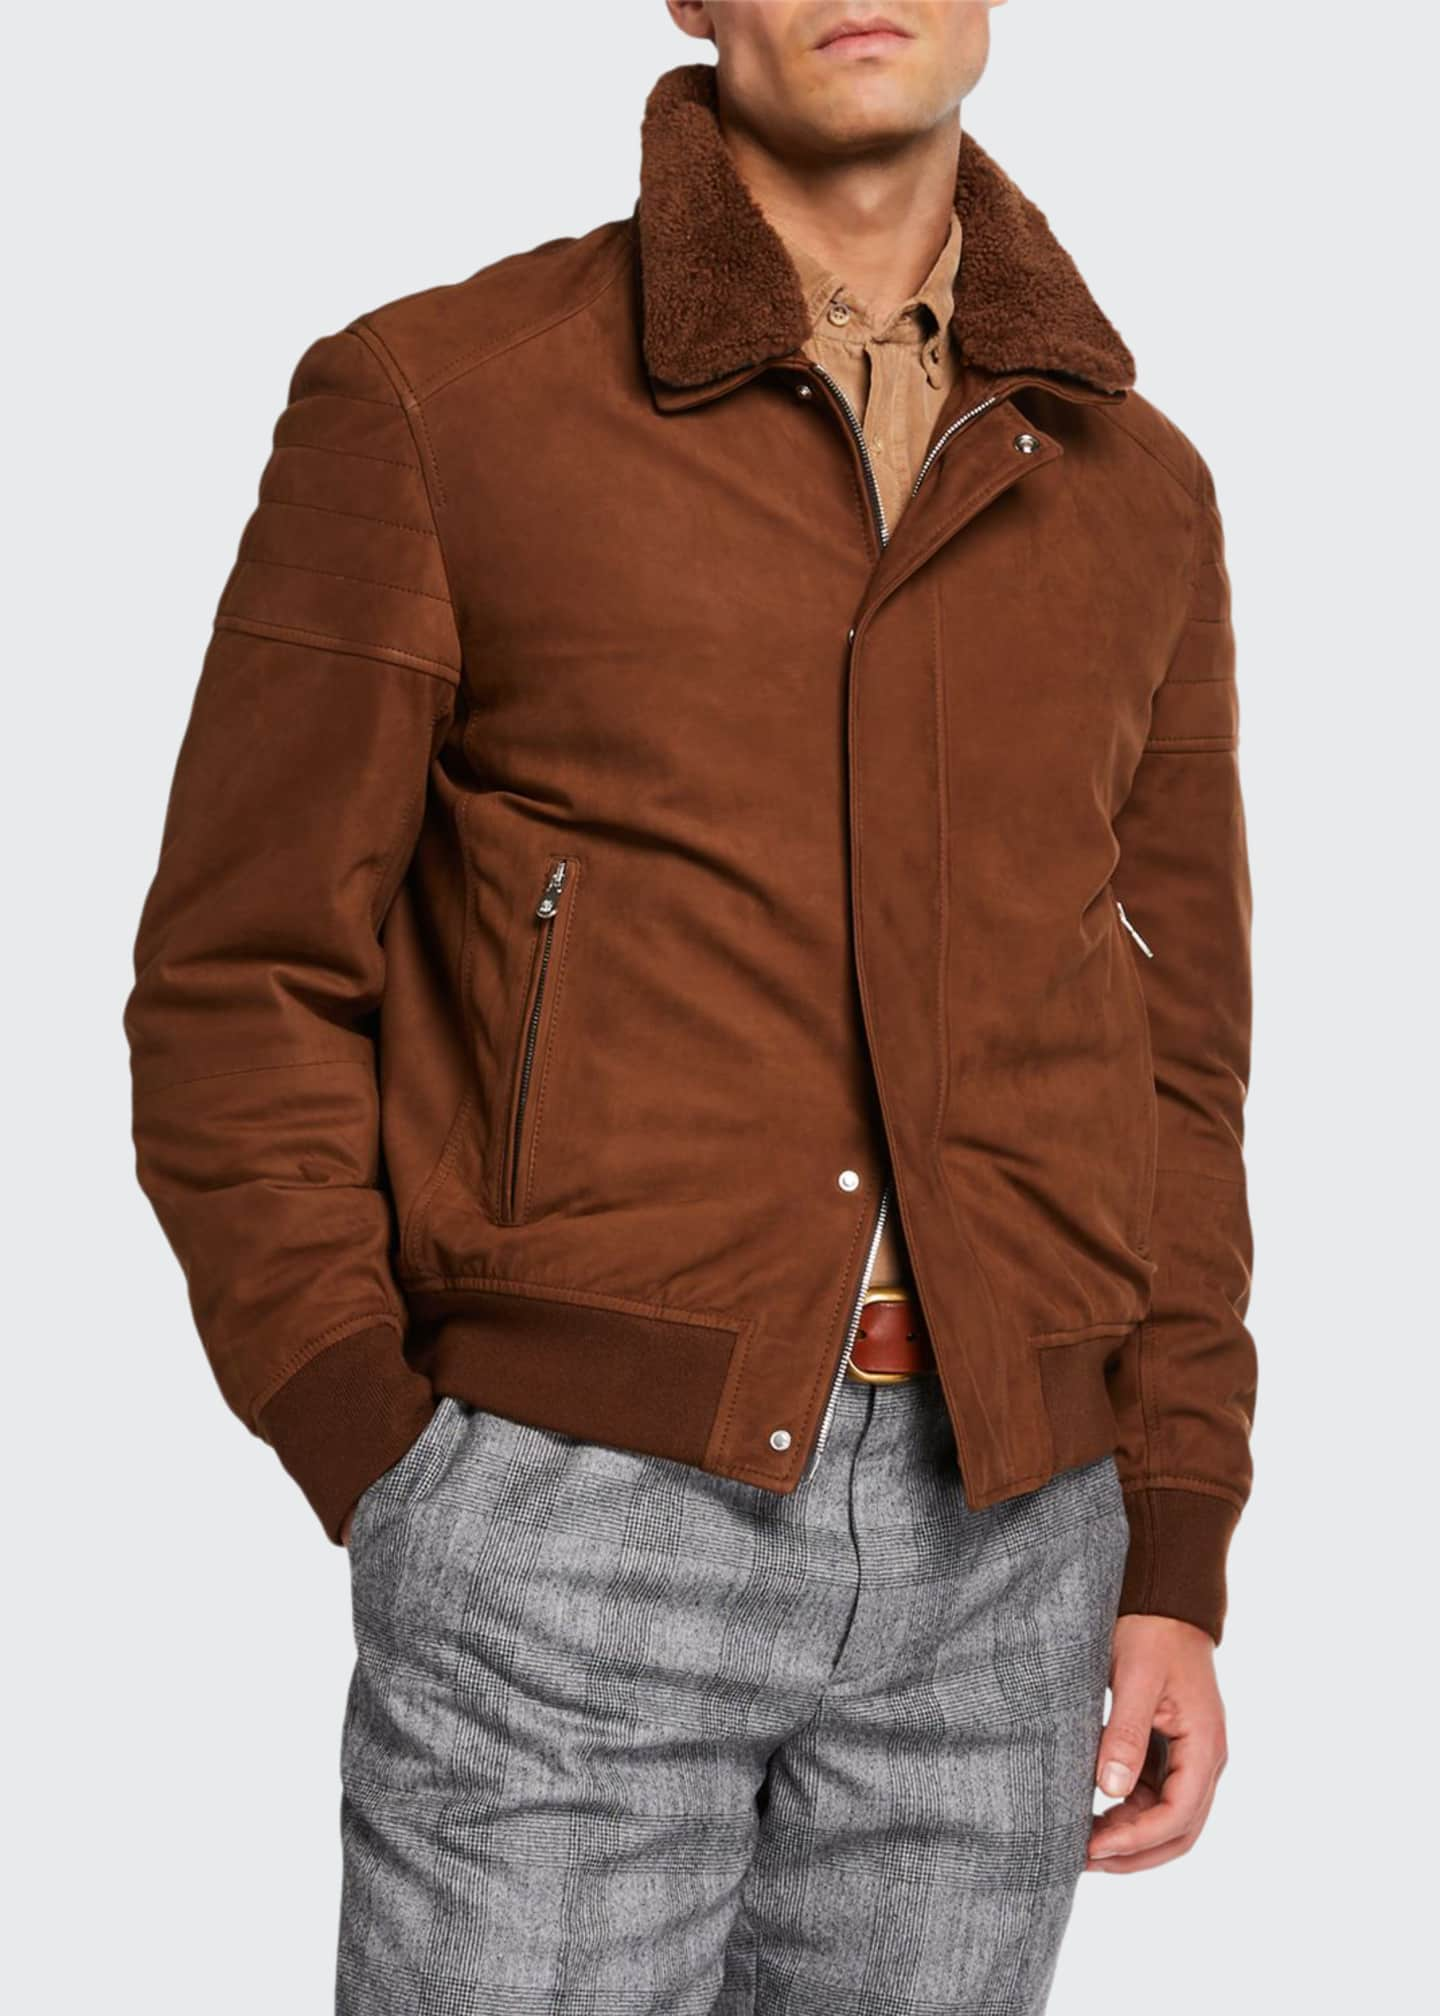 Brunello Cucinelli Men's Suede Moto Jacket with Shearling